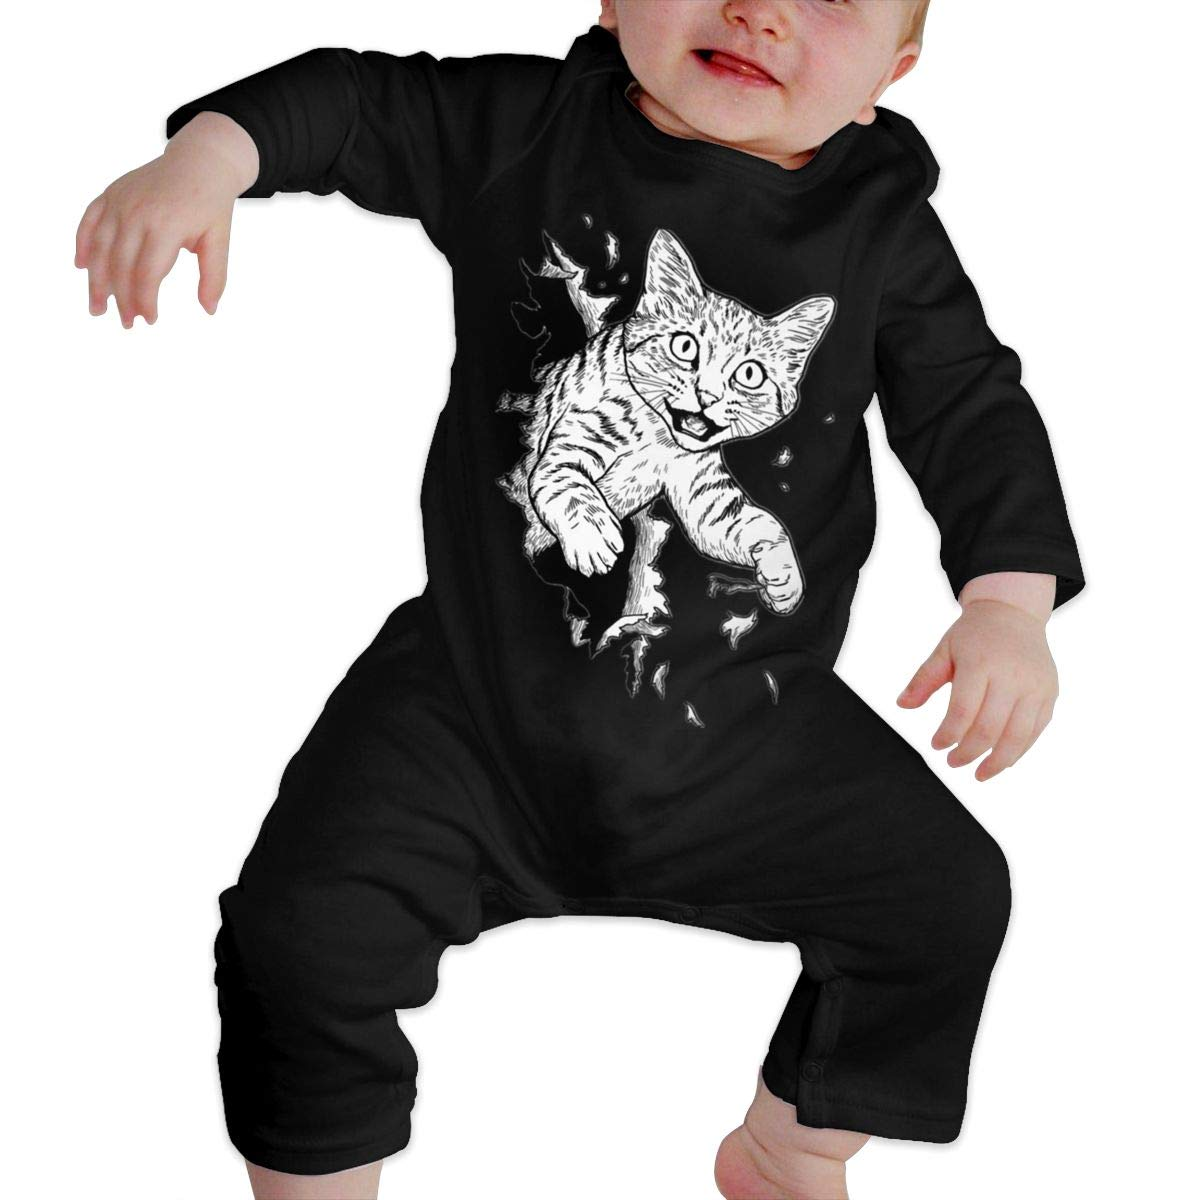 Astonished Cat Newborn Baby Boy Girl Romper Jumpsuit Long Sleeve Bodysuit Overalls Outfits Clothes